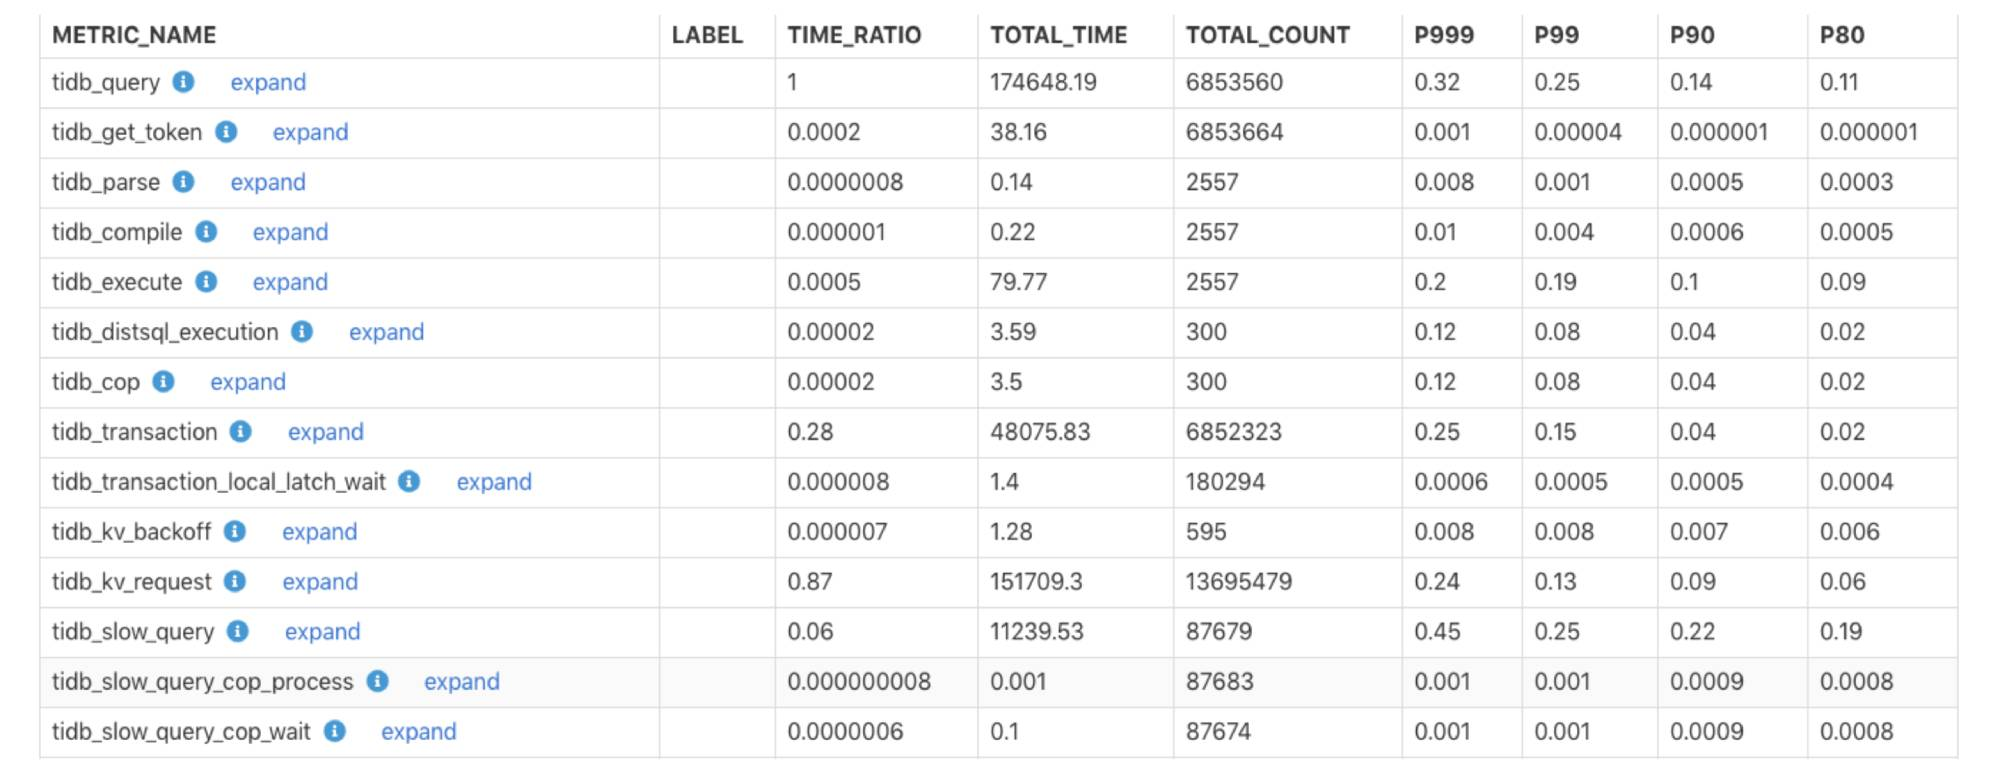 The monitoring execution time report